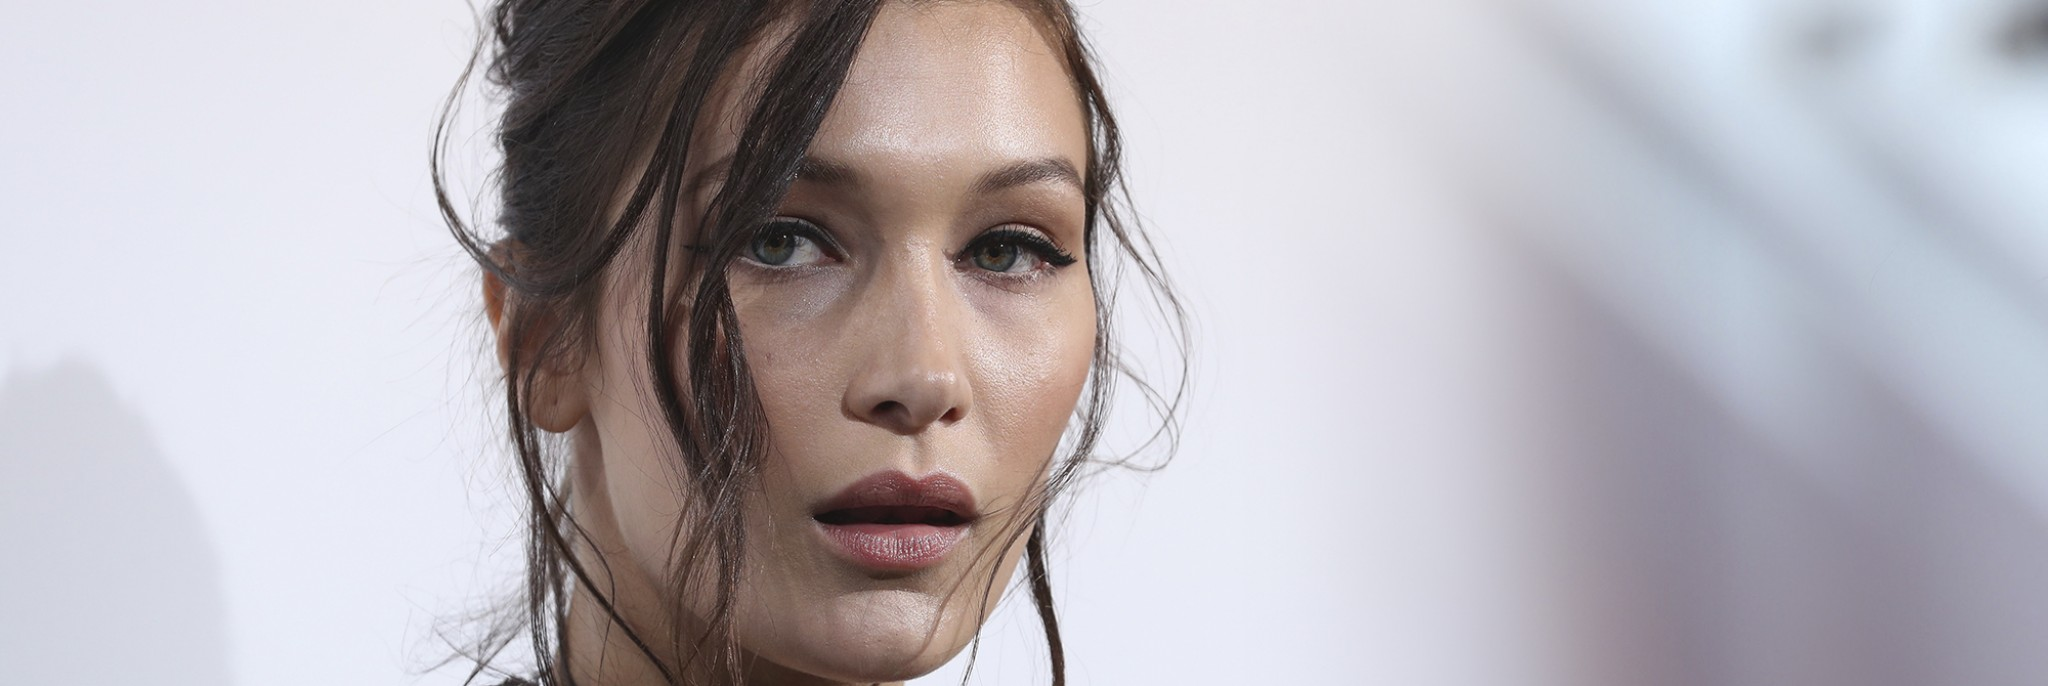 Bella Hadid 101: Everything You've Ever Wanted to Know